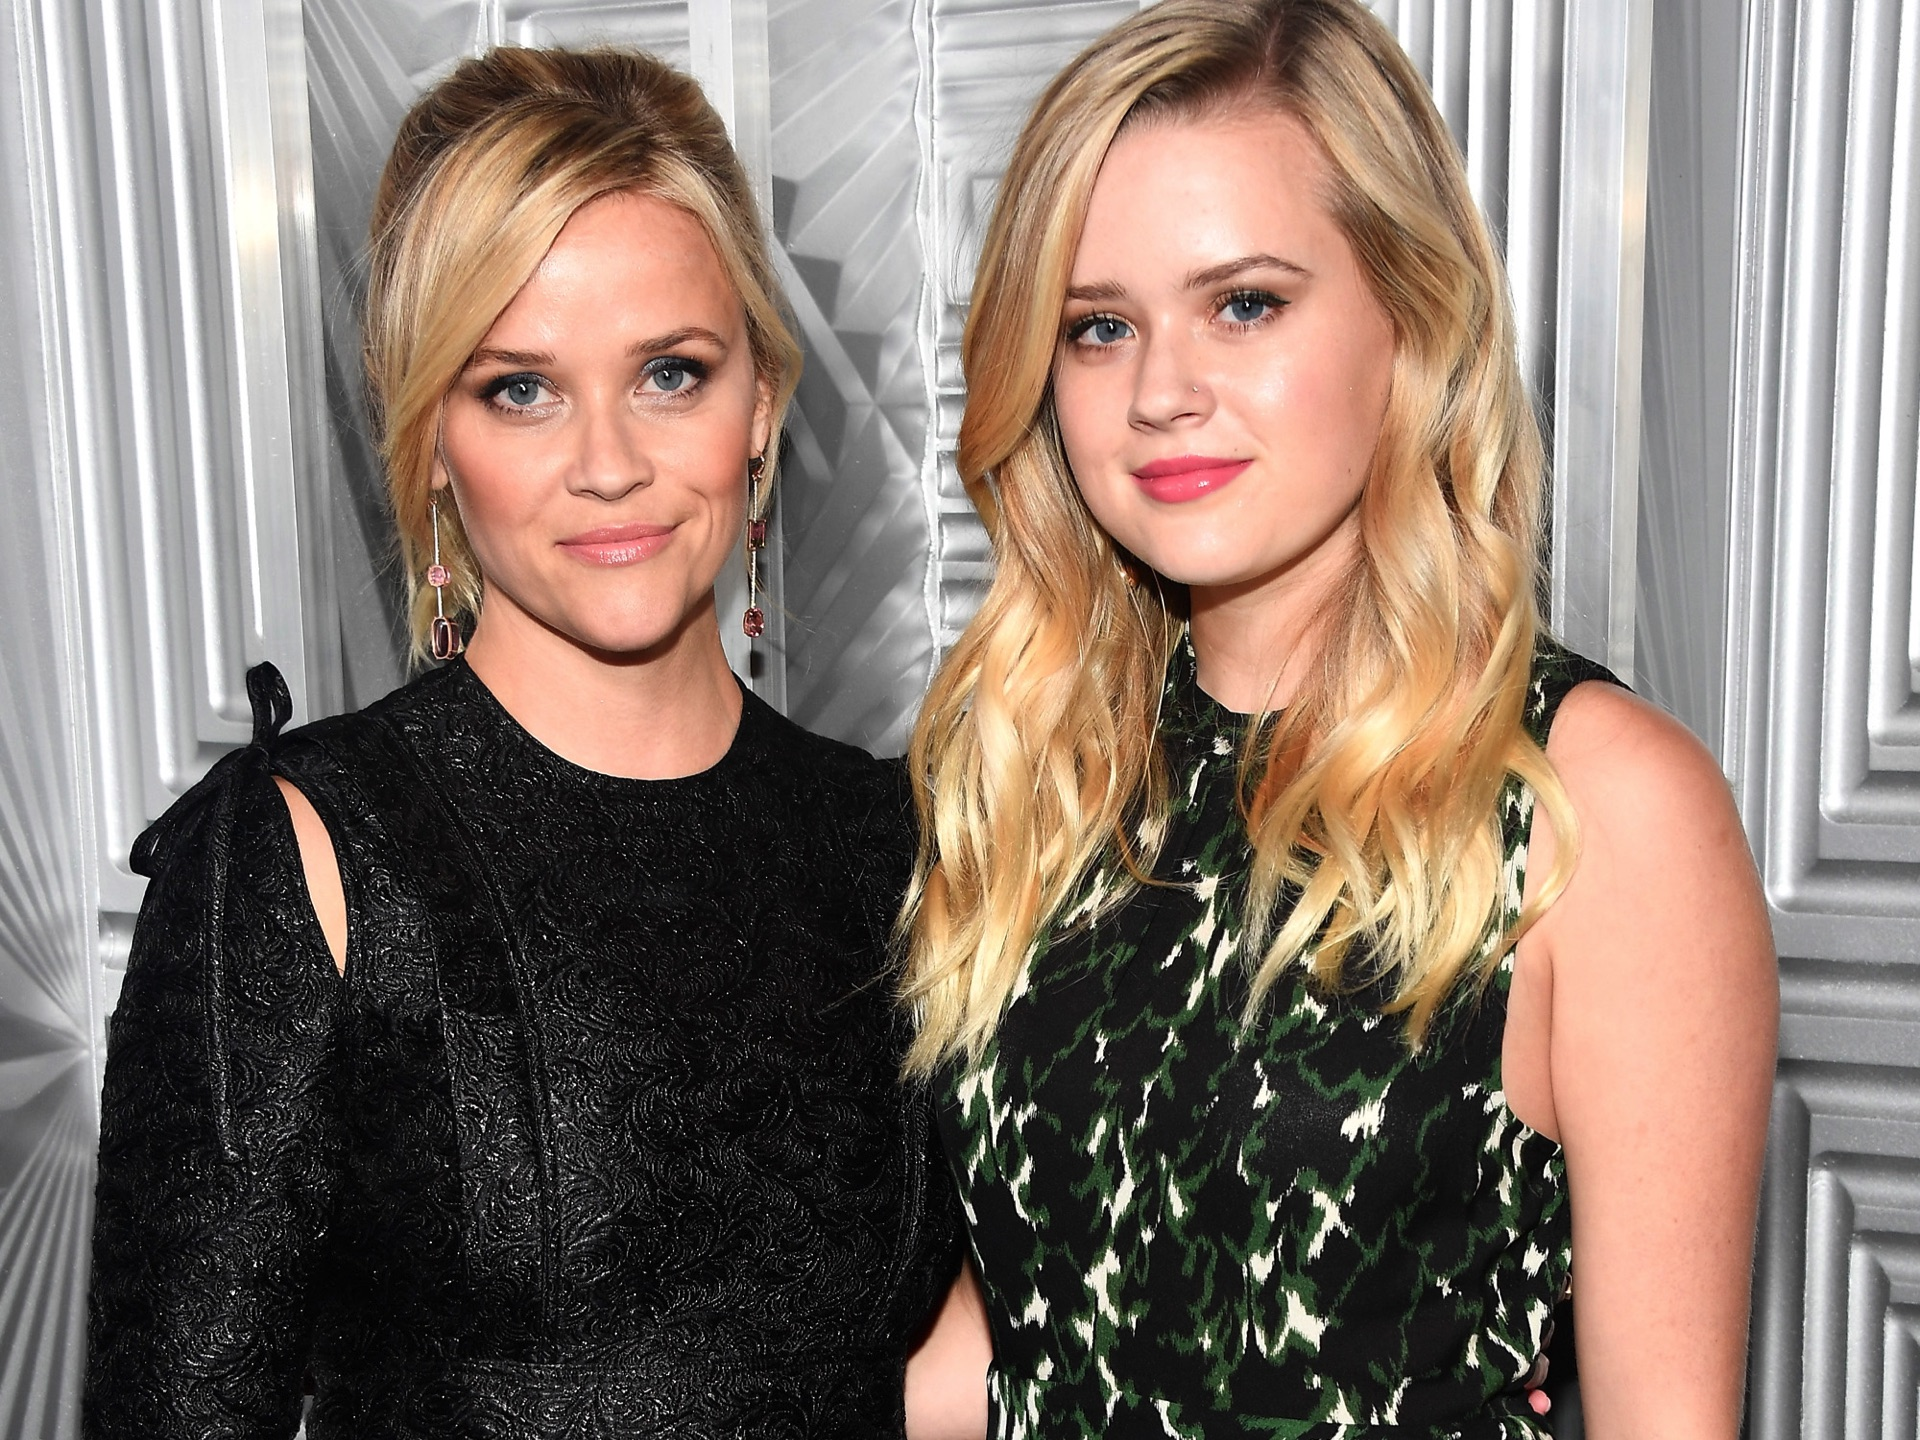 Reese Witherspoon Revela Frente A Su Hija Que Fue Agredida